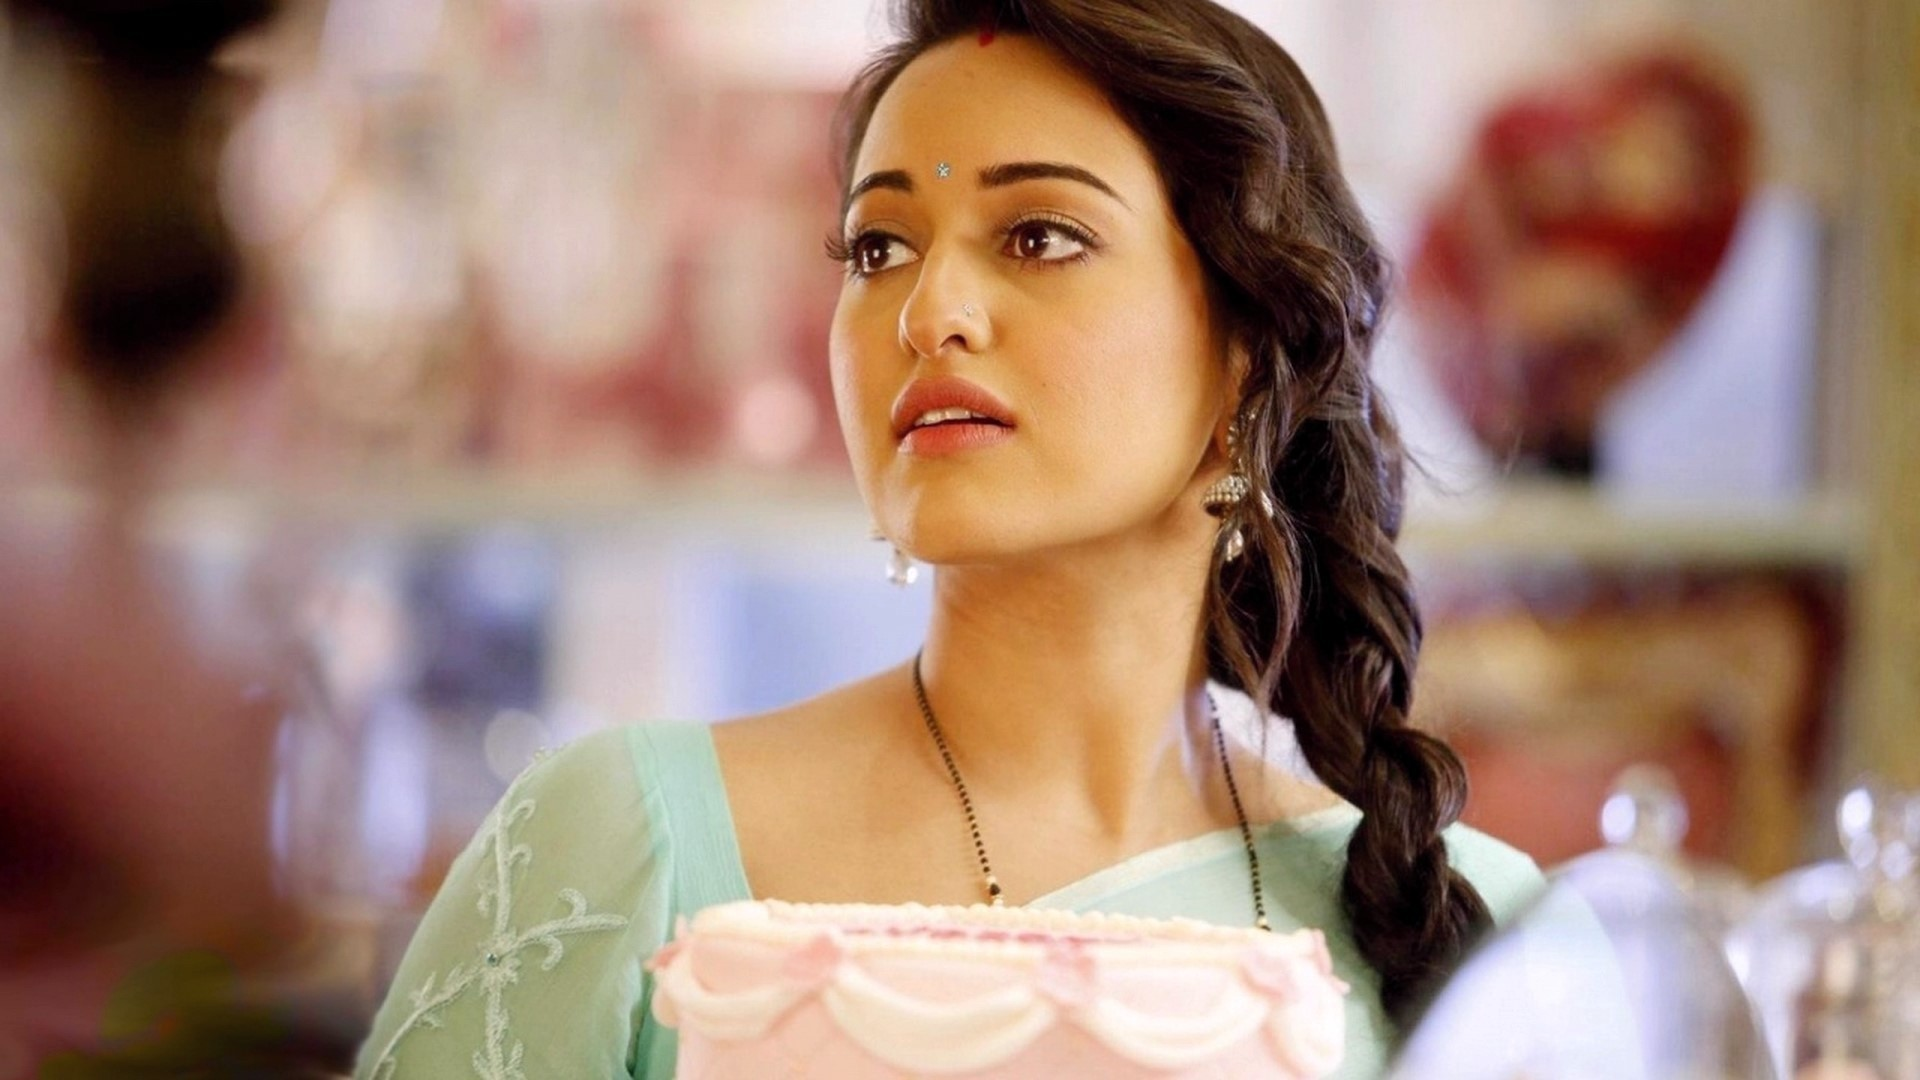 Sonakshi Sinha Hd Wallpapers: Sonakshi Sinha Wallpapers, Pictures, Images